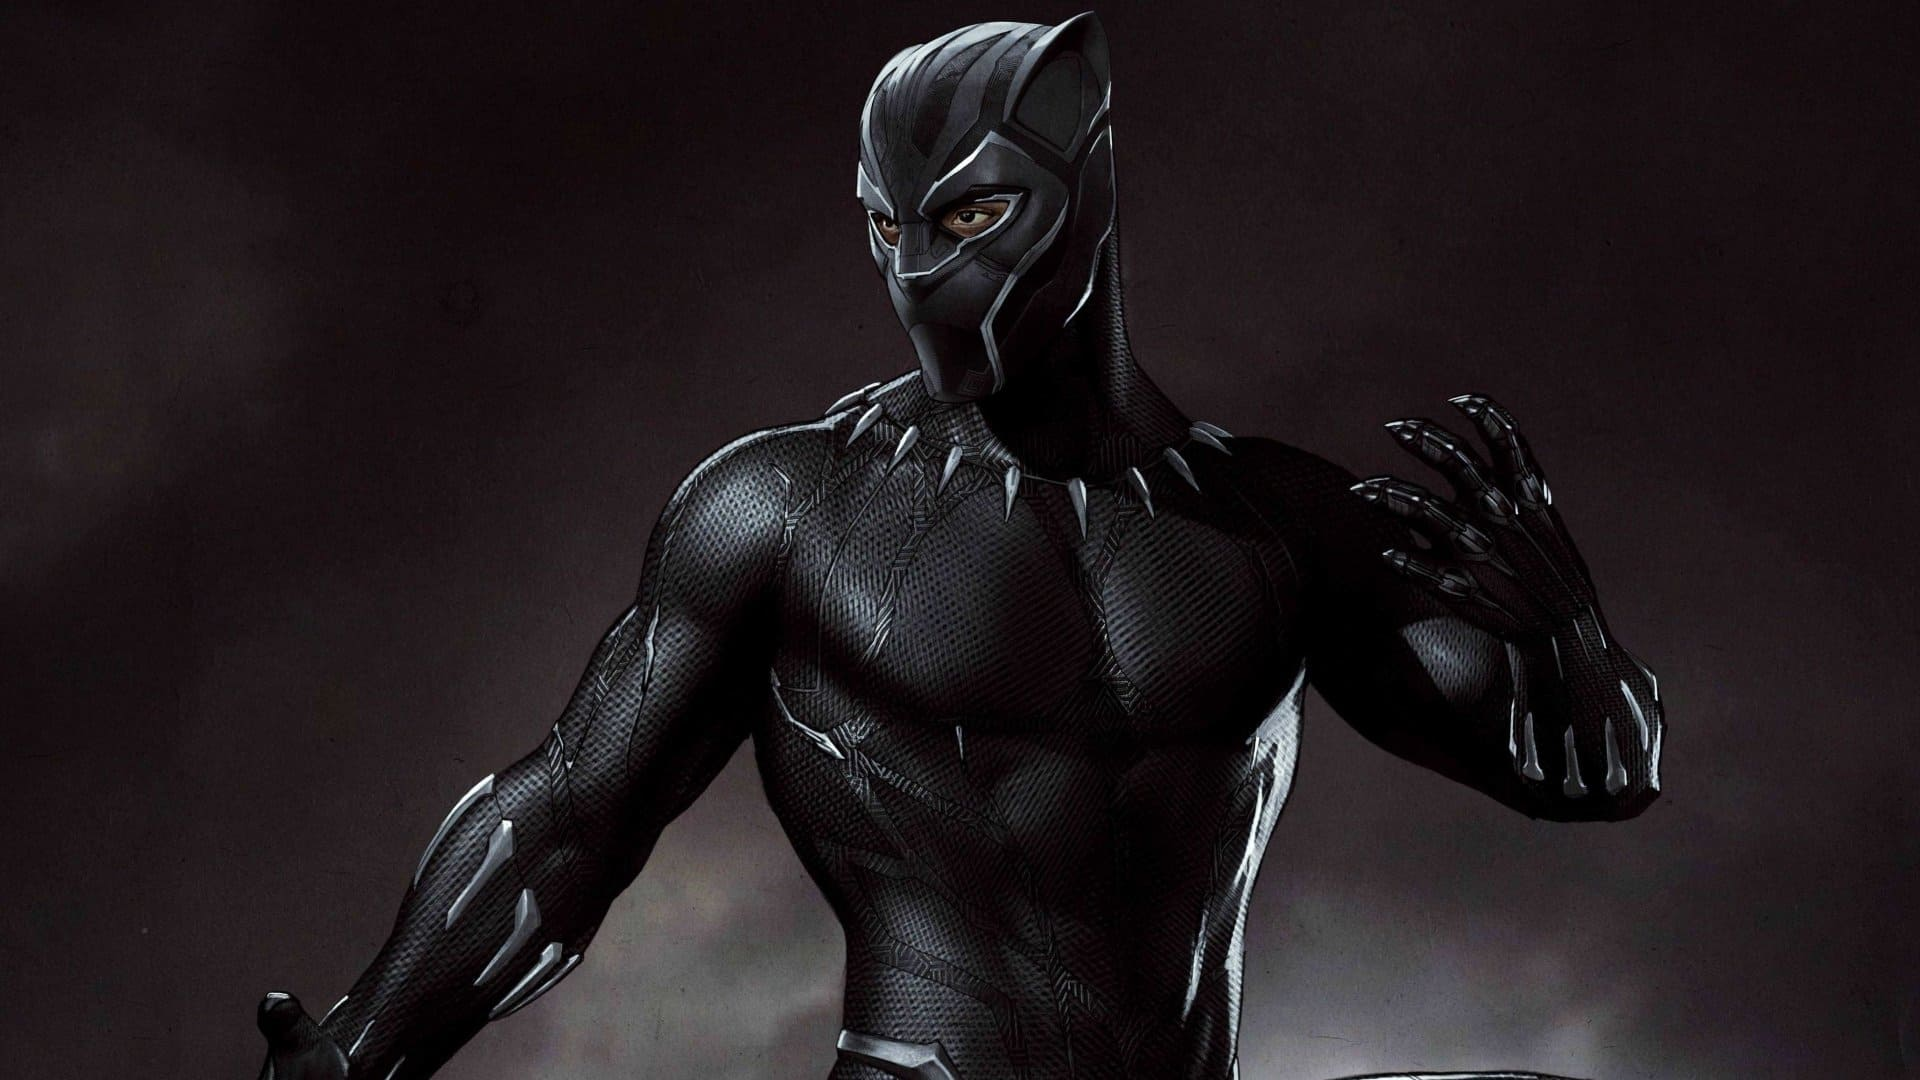 Black panther wall paper